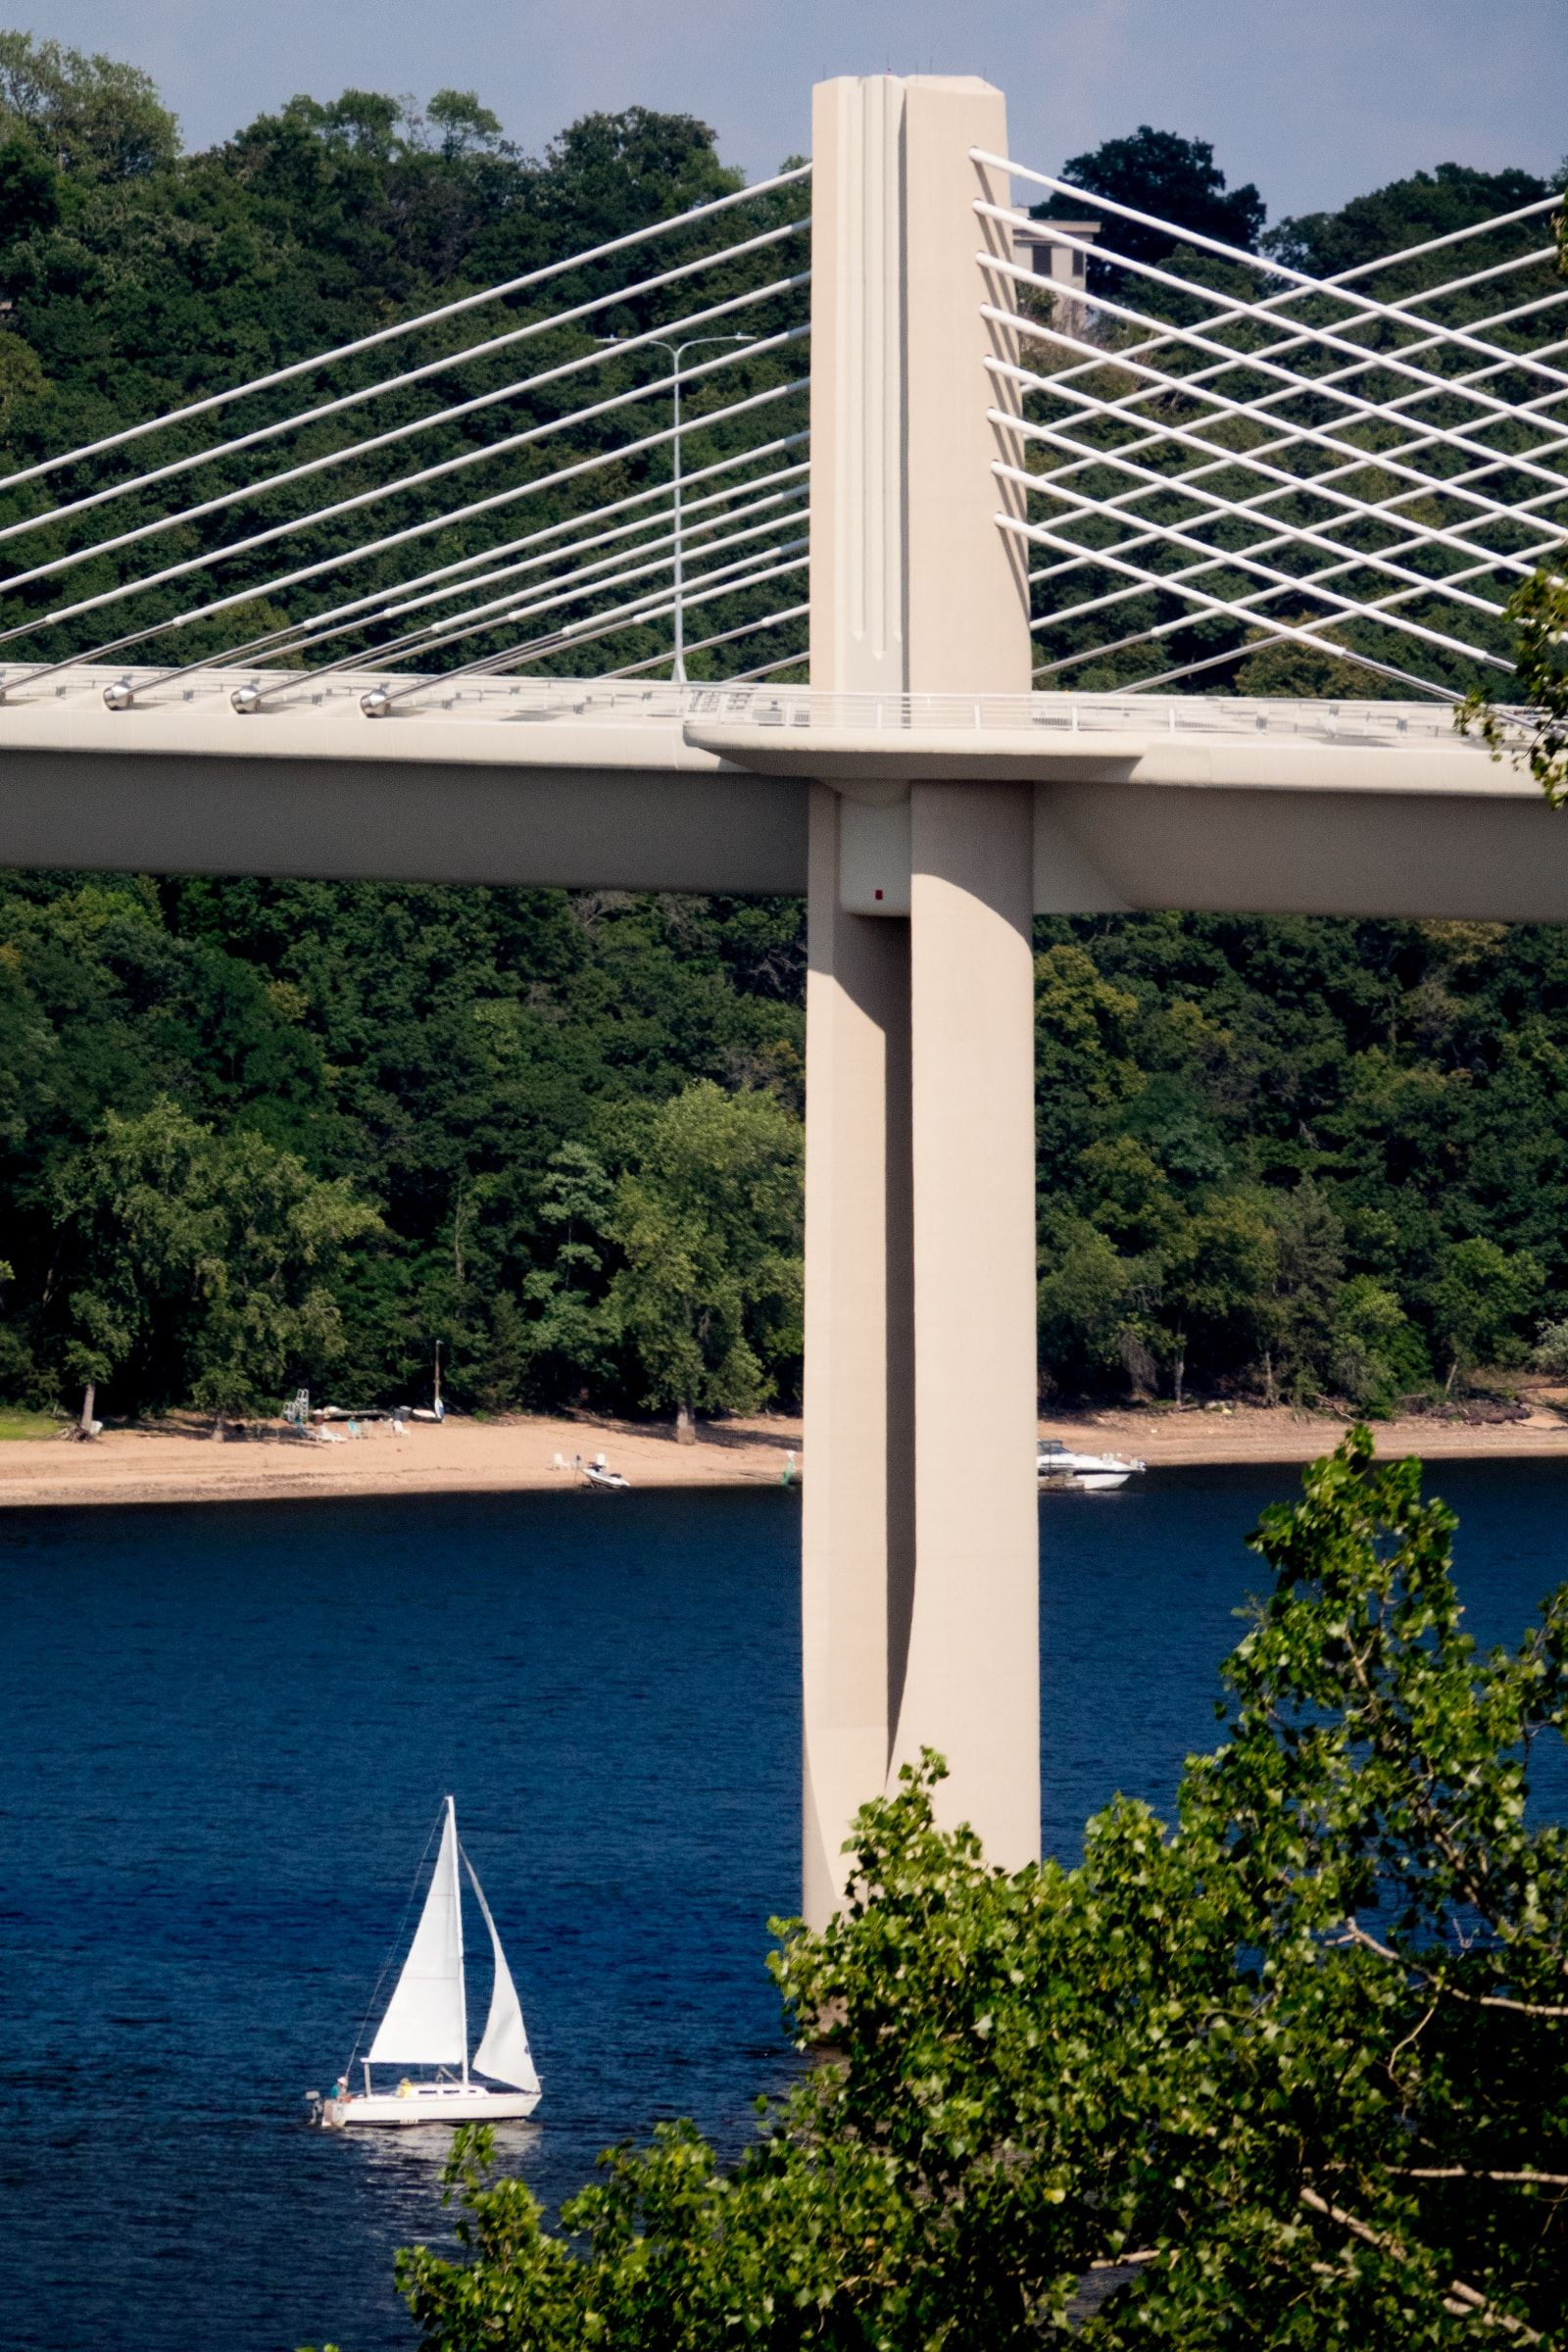 St Croix River Crossing with Sailboat